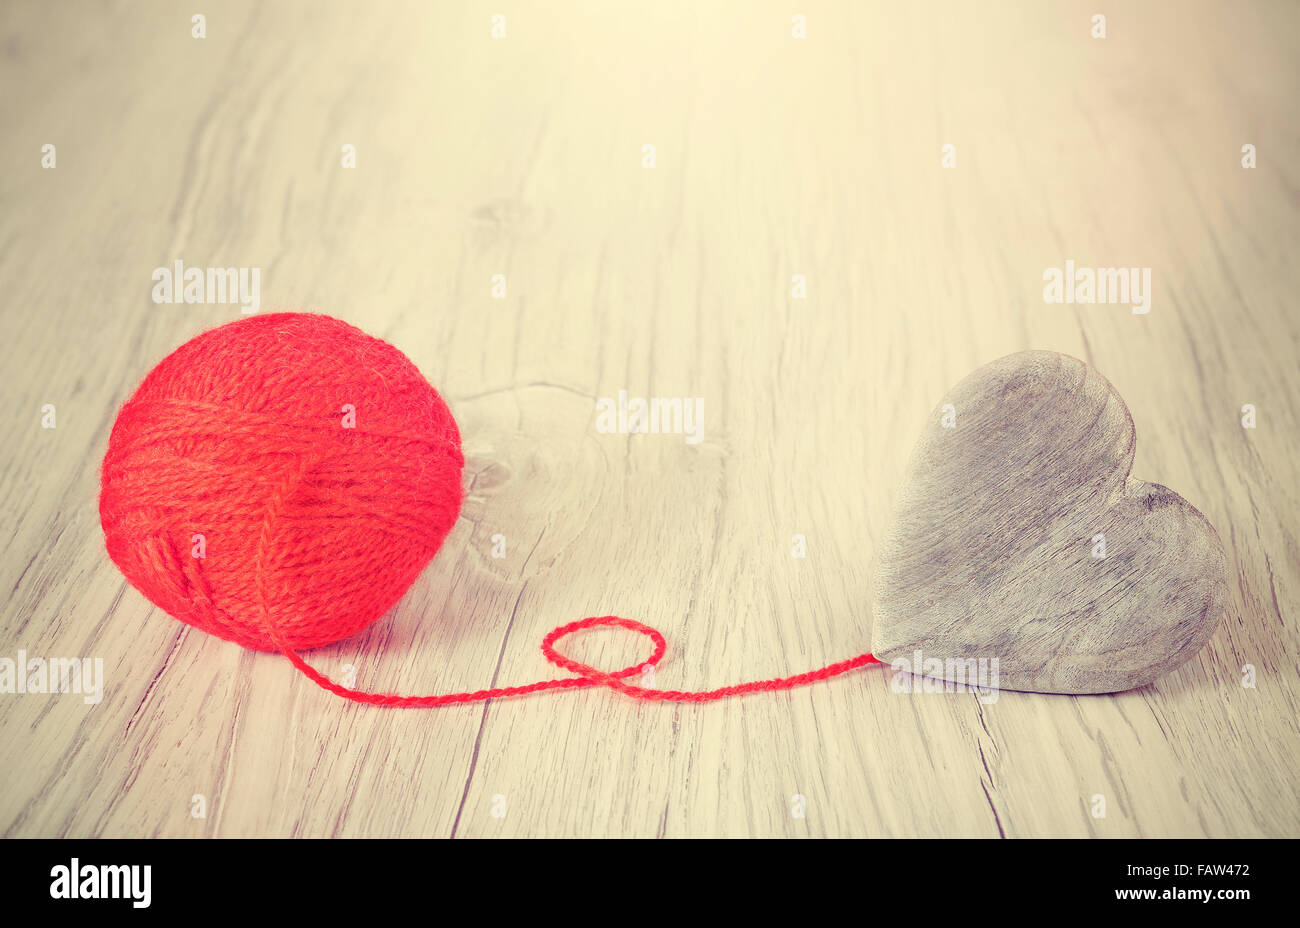 Wooden heart connected to red yarn, concept picture. - Stock Image